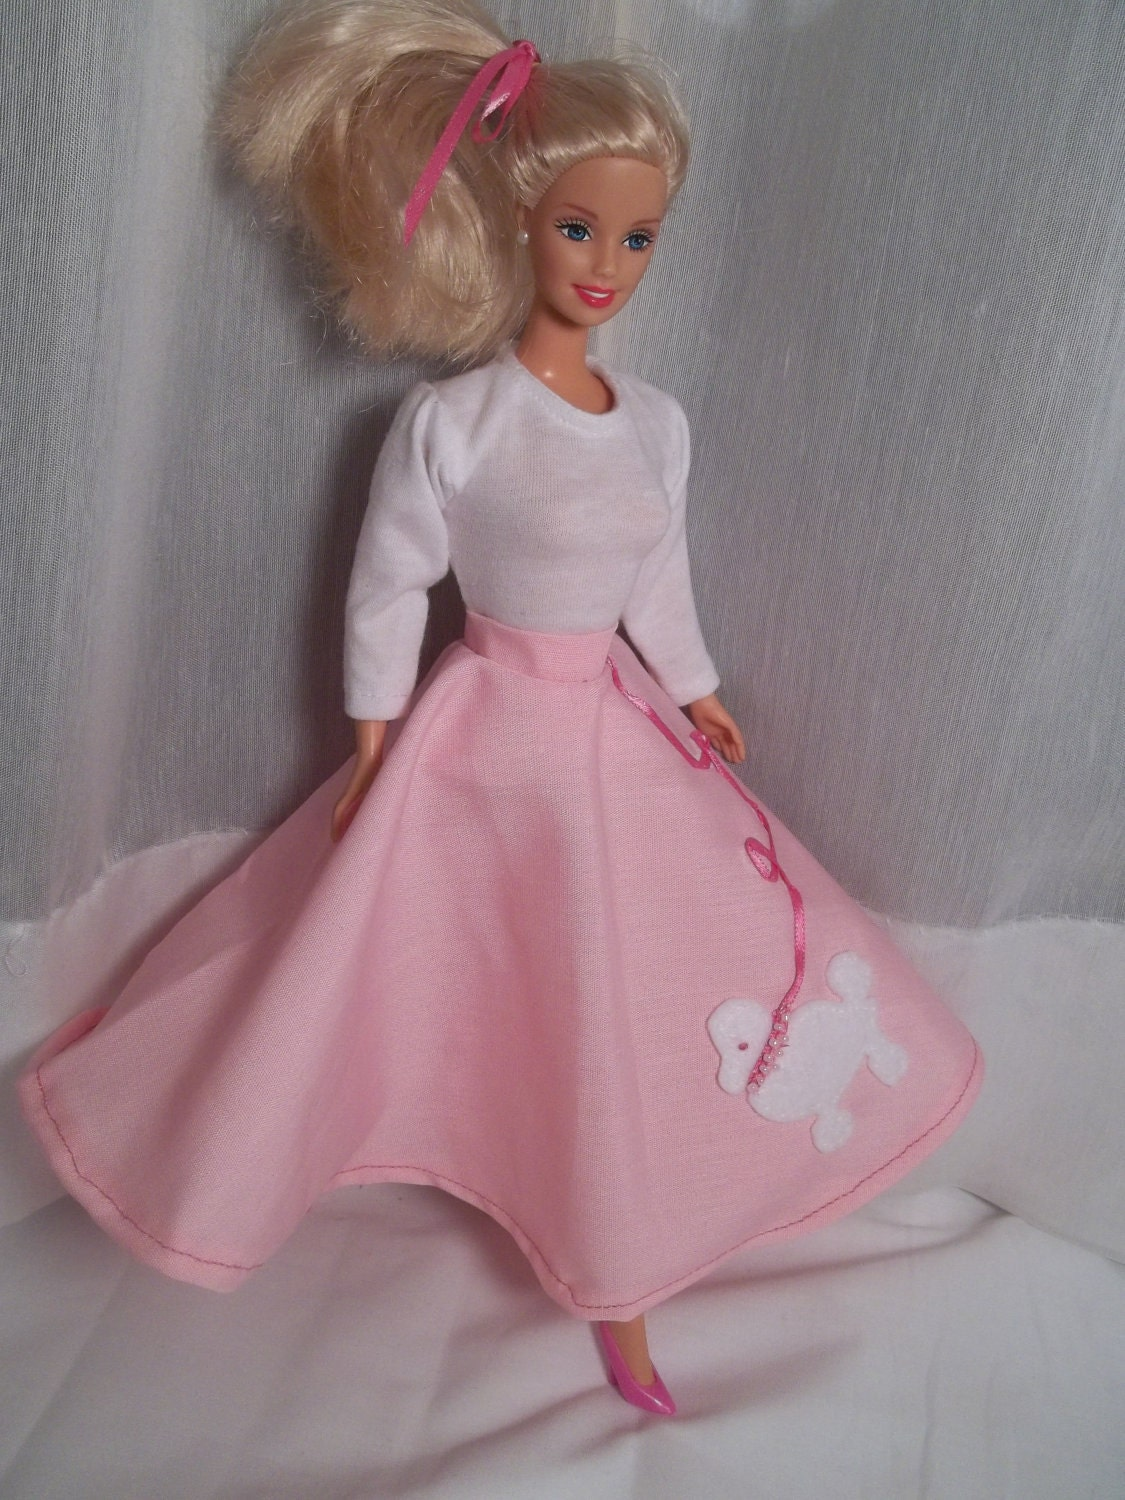 Barbie Clothes Halloween Costume 50s Sock Hop Poodle Skirt